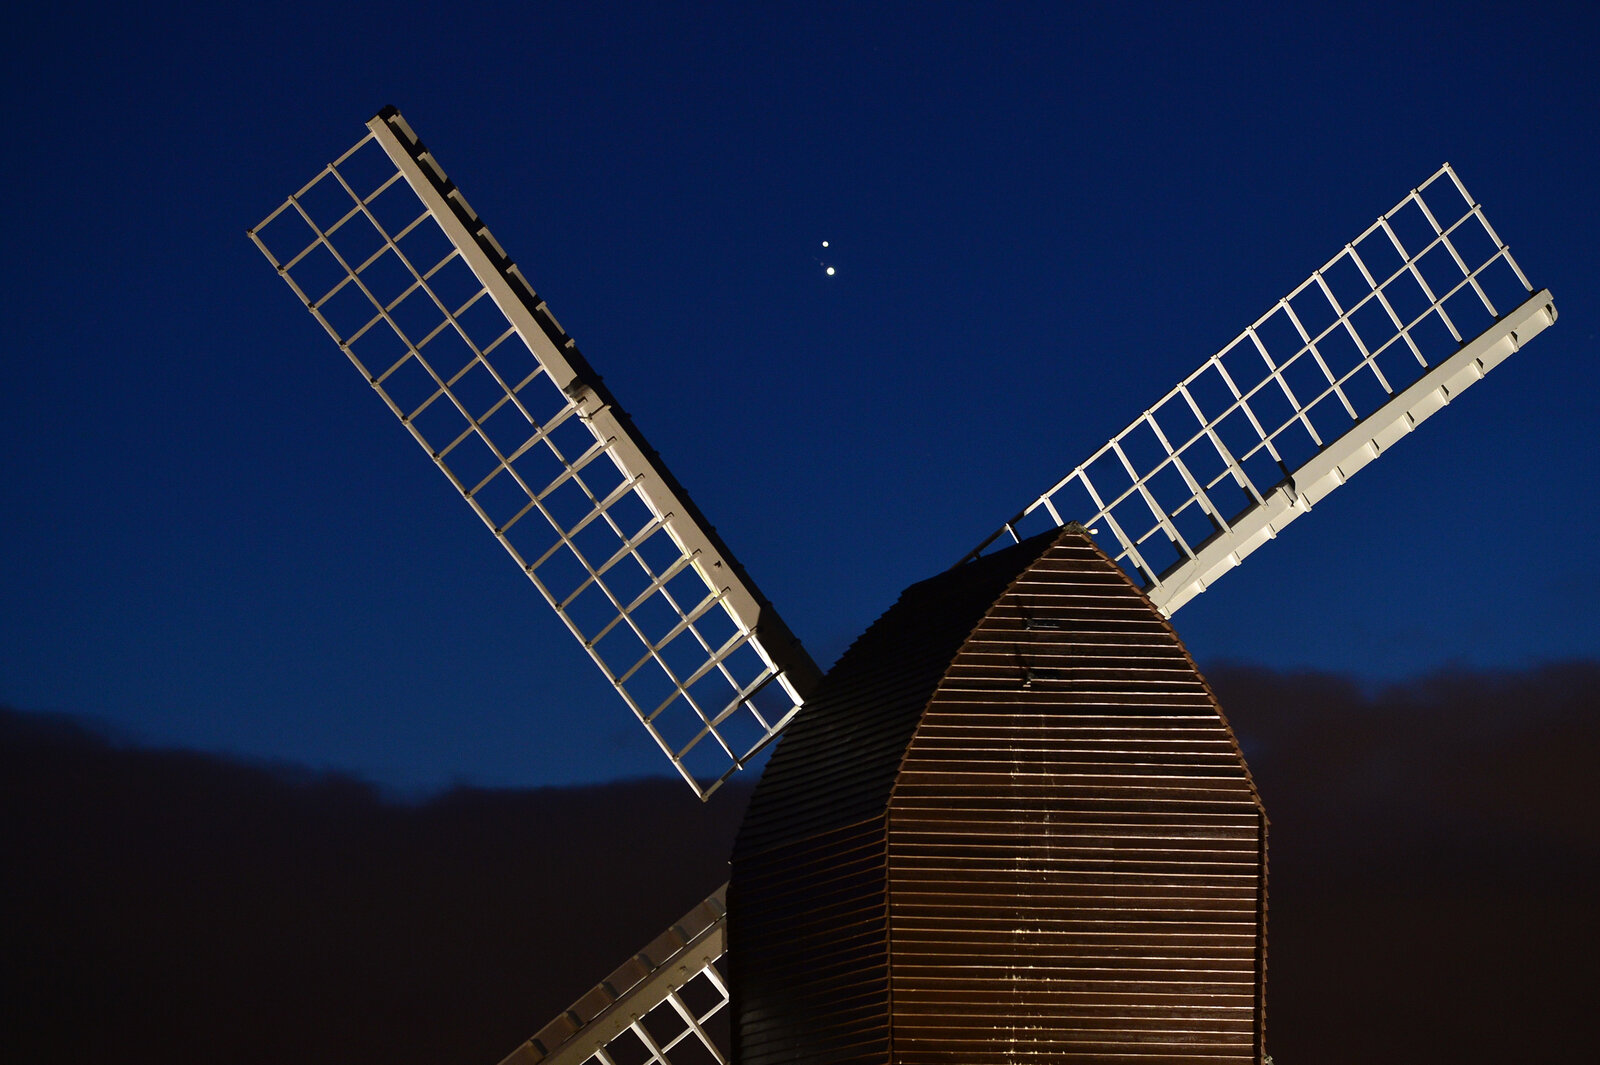 Jupiter and Saturn are seen coming together in the night sky, over the sails of Brill windmill in Brill, England.